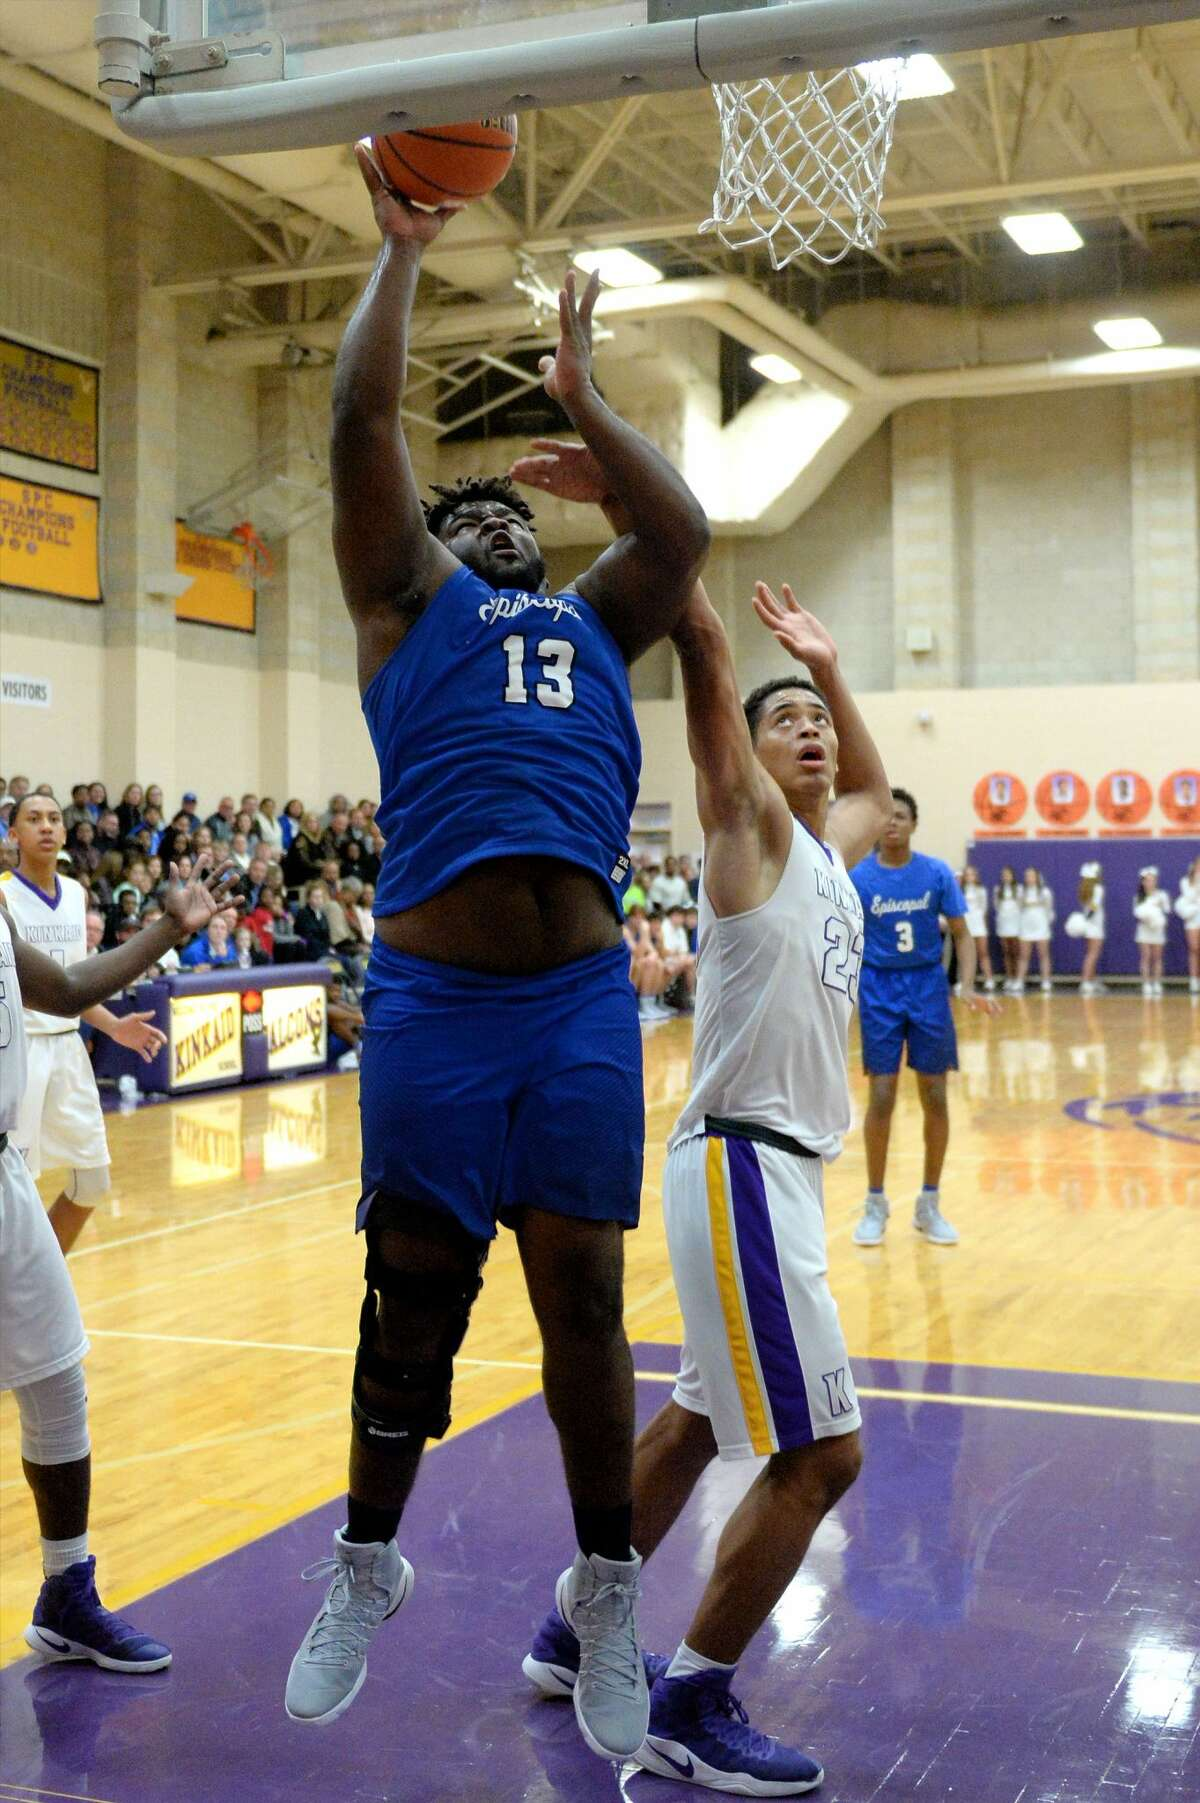 Marvin Wilson (13) of Episcopal attempts a lay-up during the first half of a boys basketball game between the Episcopal Knights and the Kinkaid Falcons on Tuesday January 27, 2017 at Kinkaid High School, Houston, TX.